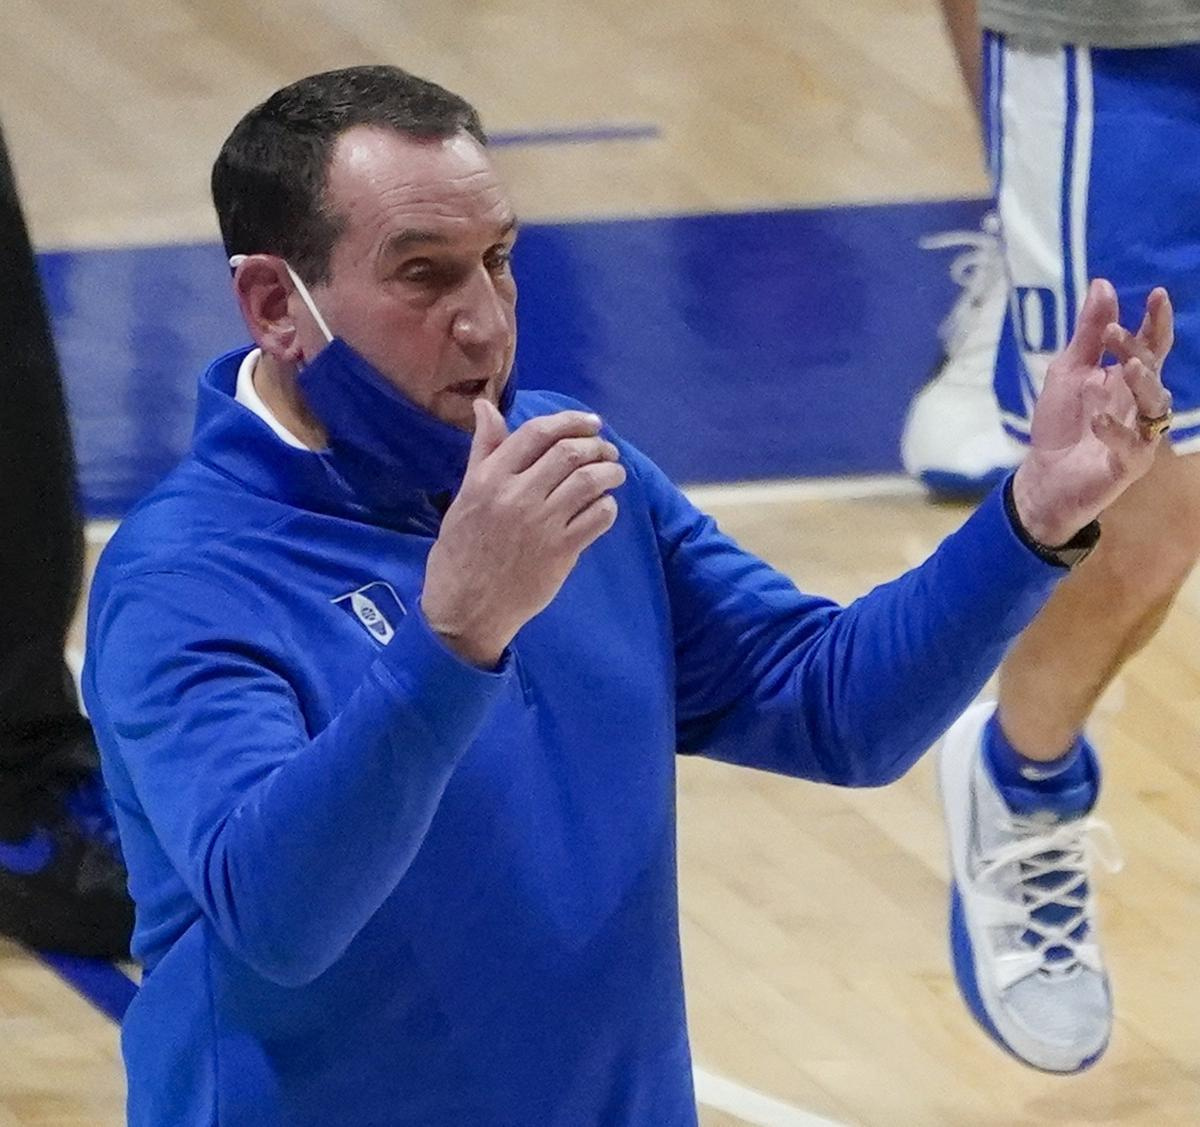 Duke Loses to Notre Dame, Falls Below .500 for First Time Since 1999 - Bleacher Report